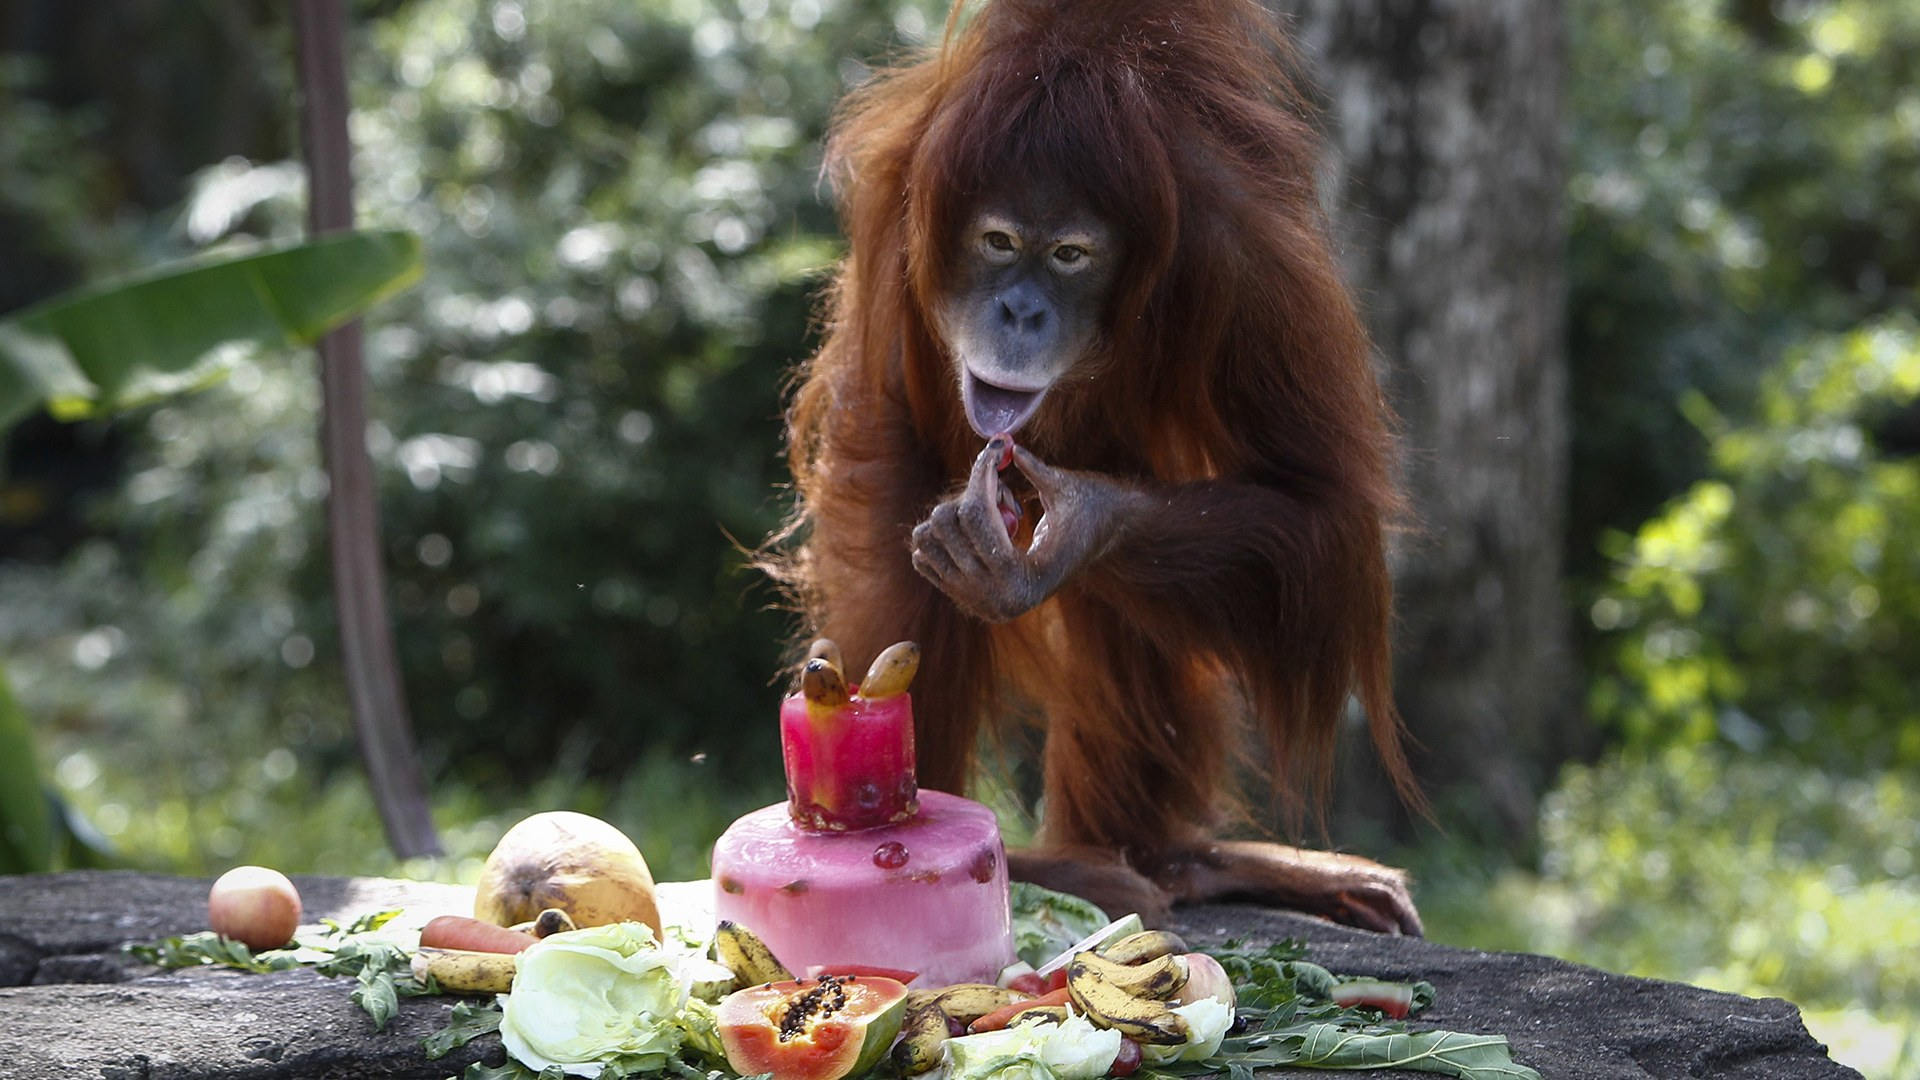 Tsunami, an eleven year old female Sumatran Orangutan eats a fruit platter during her birthday celebration at the National Zoo Ape Center in Kuala Lumpur, Malaysia